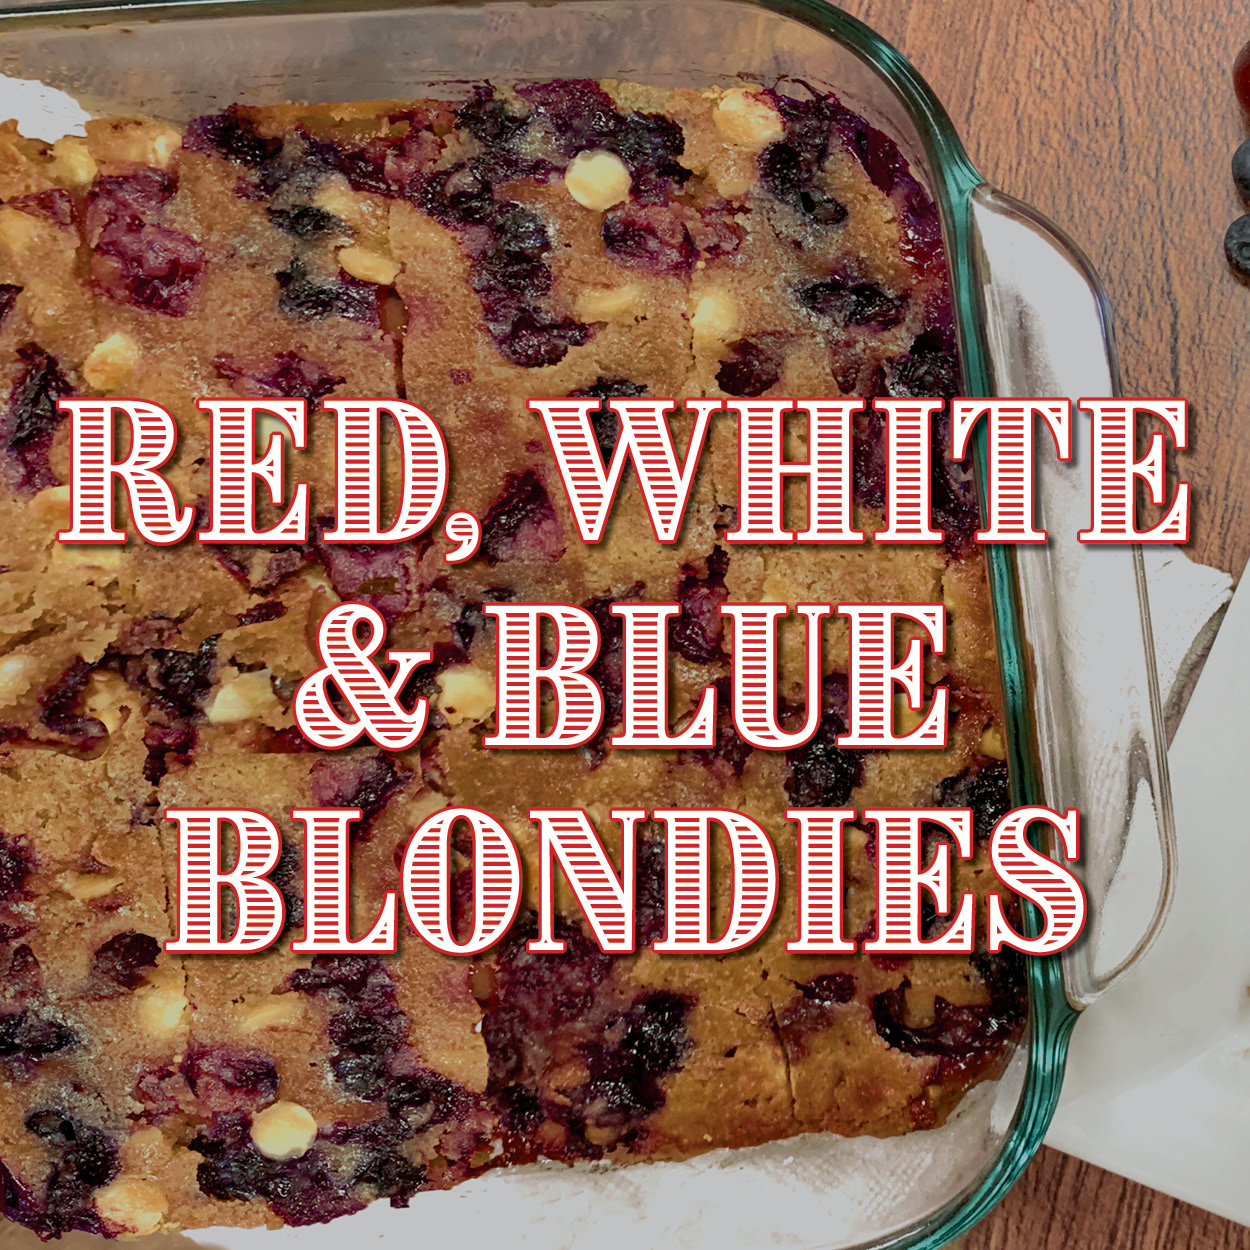 Red, Whire and Blue Blondies